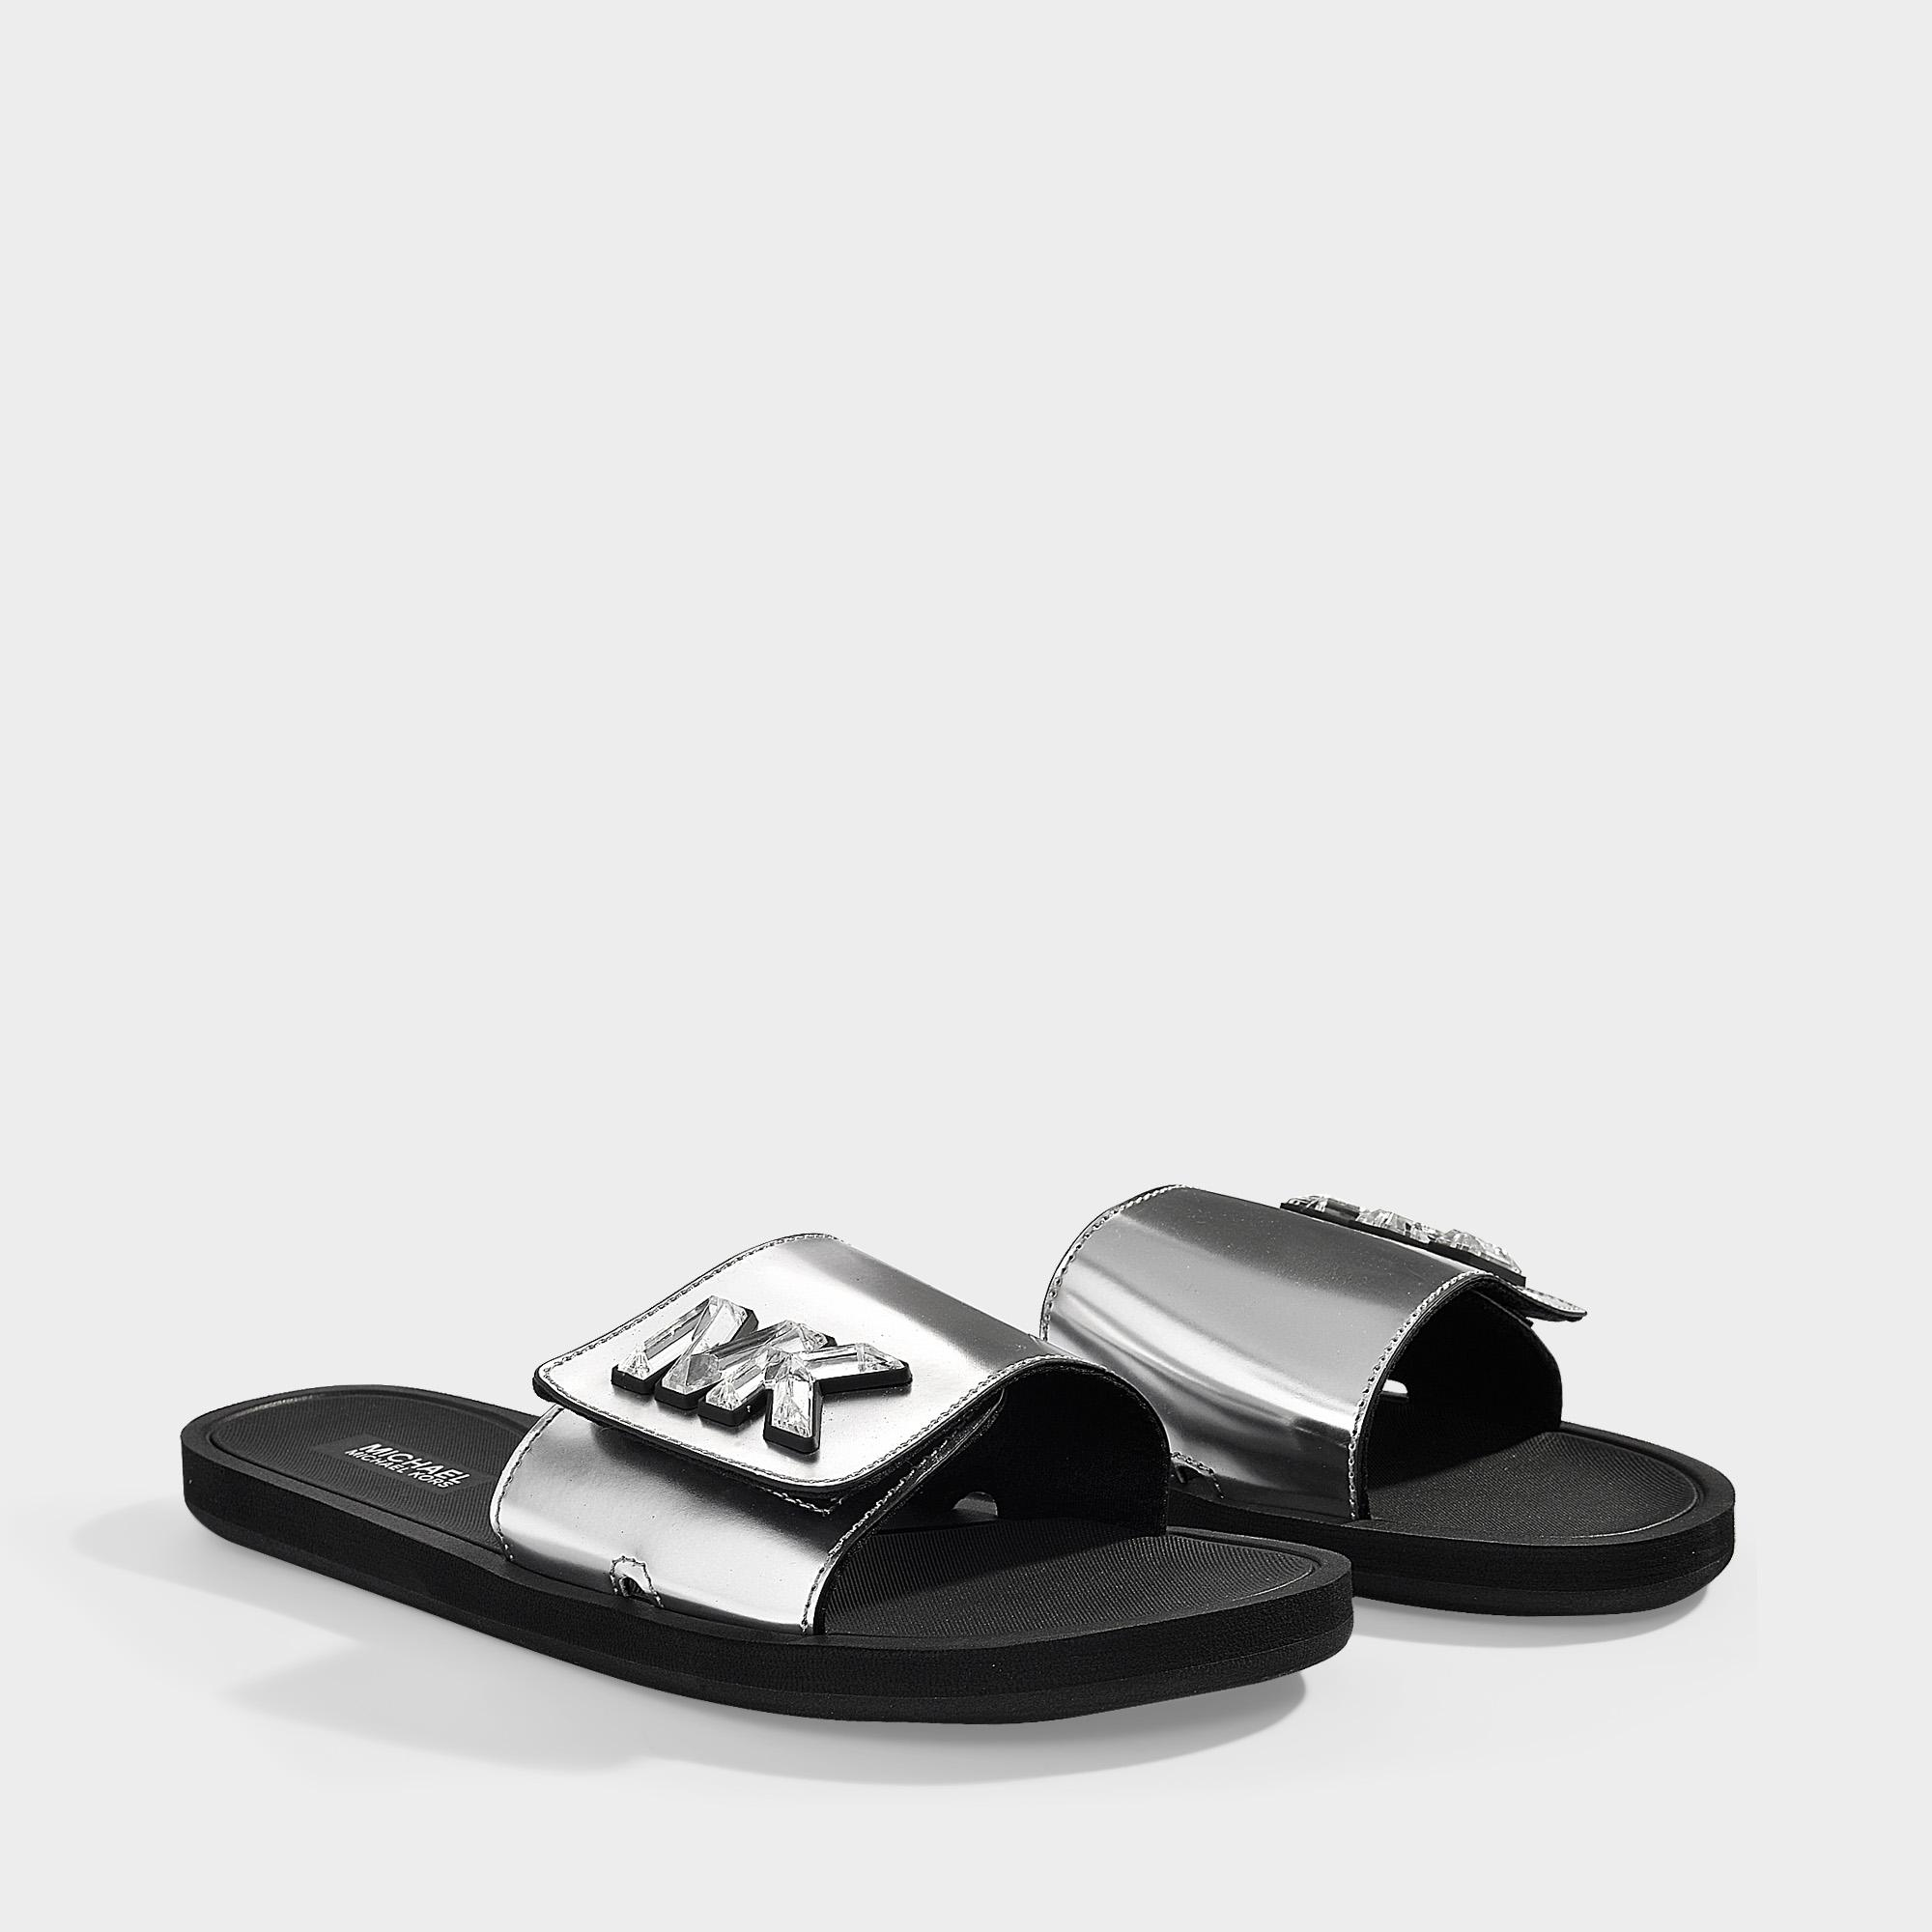 482bcf047e0f MICHAEL Michael Kors - Gray Mk Slides In Silver Mirror Metallic Material  And Crystals - Lyst. View fullscreen